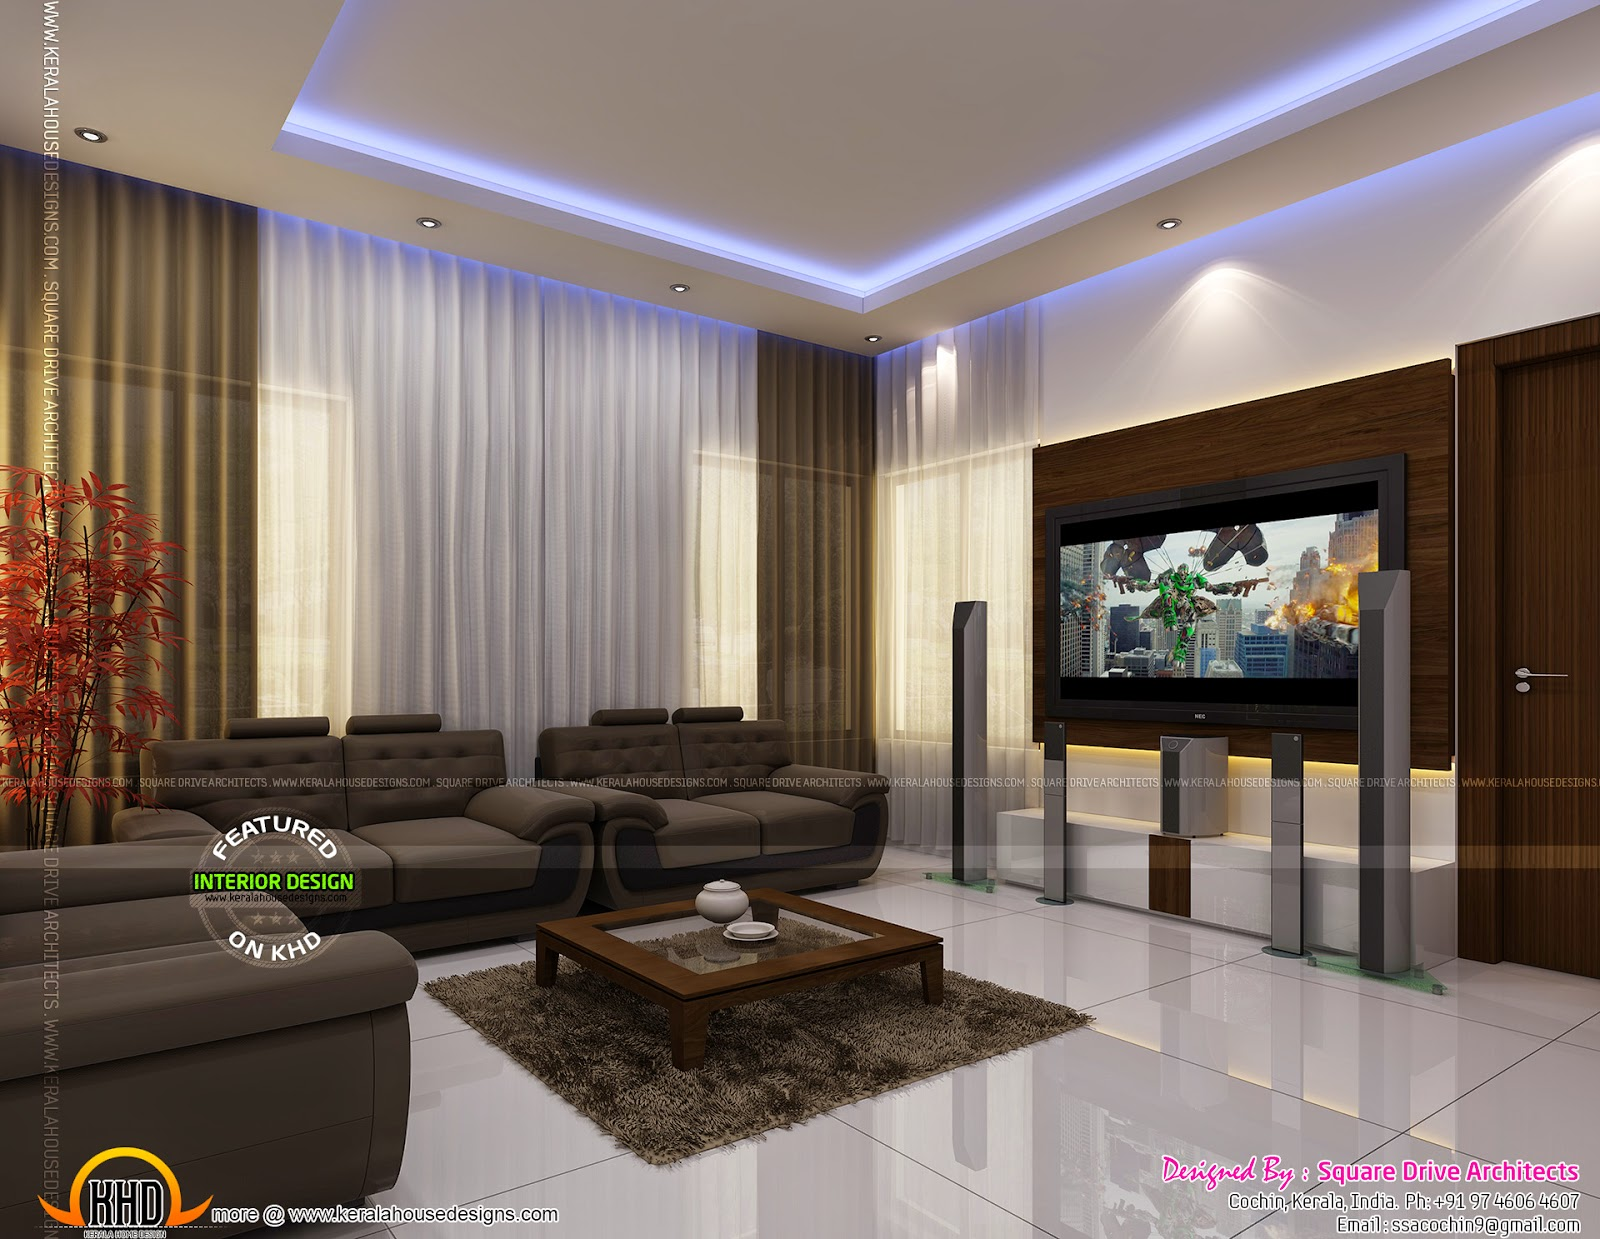 Home Interior Design Ideas Kerala: Kerala Home Design And Floor Plans